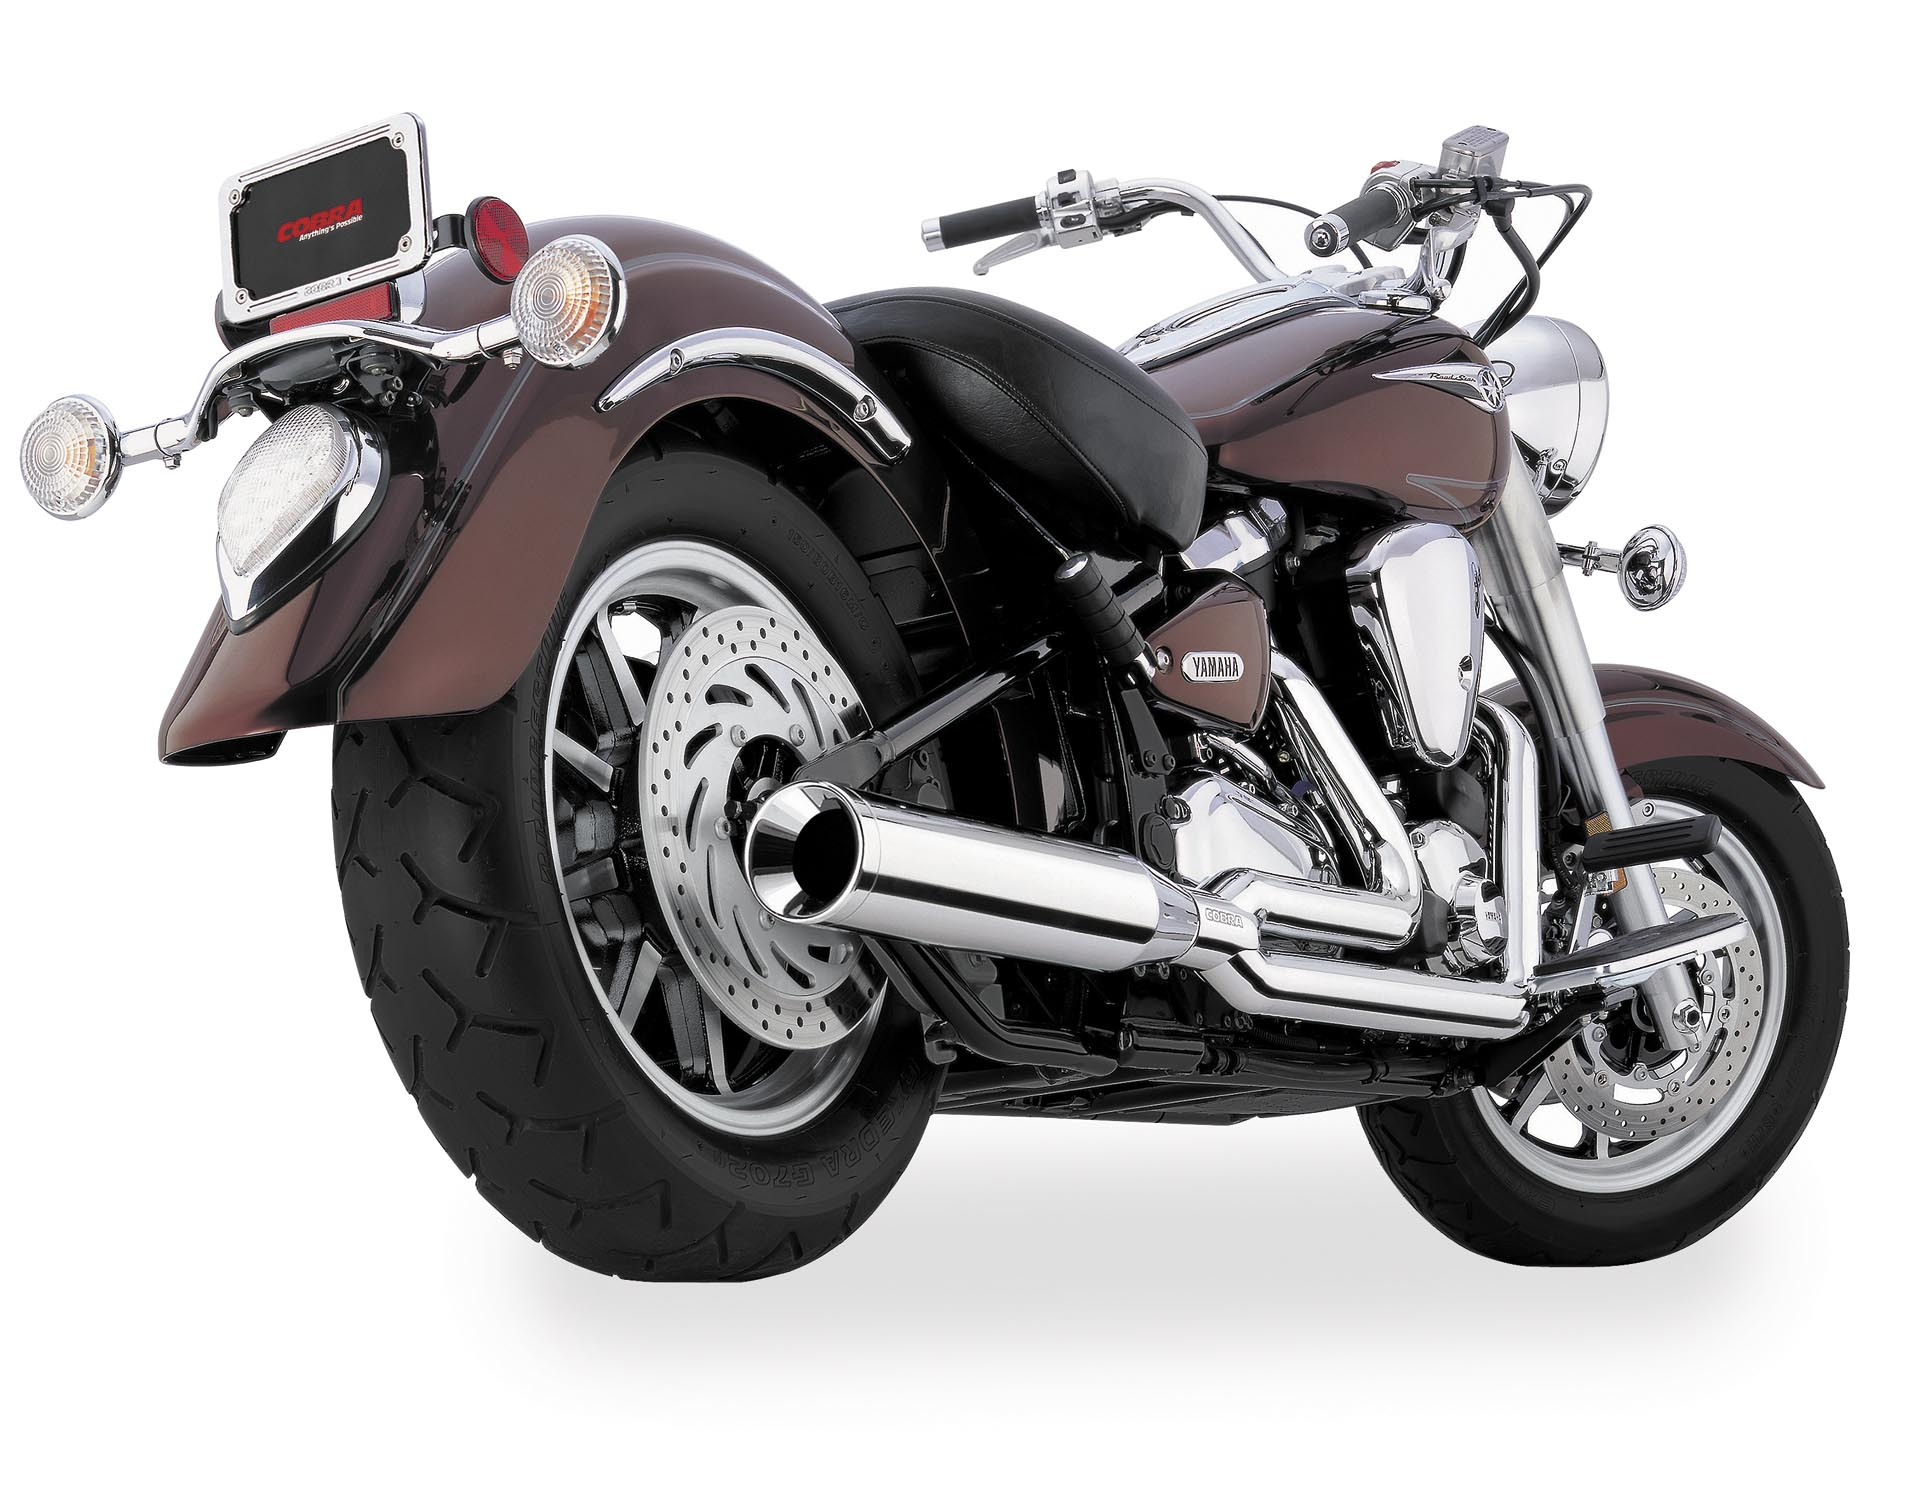 WeKnowChoppers com has the most competitive prices for